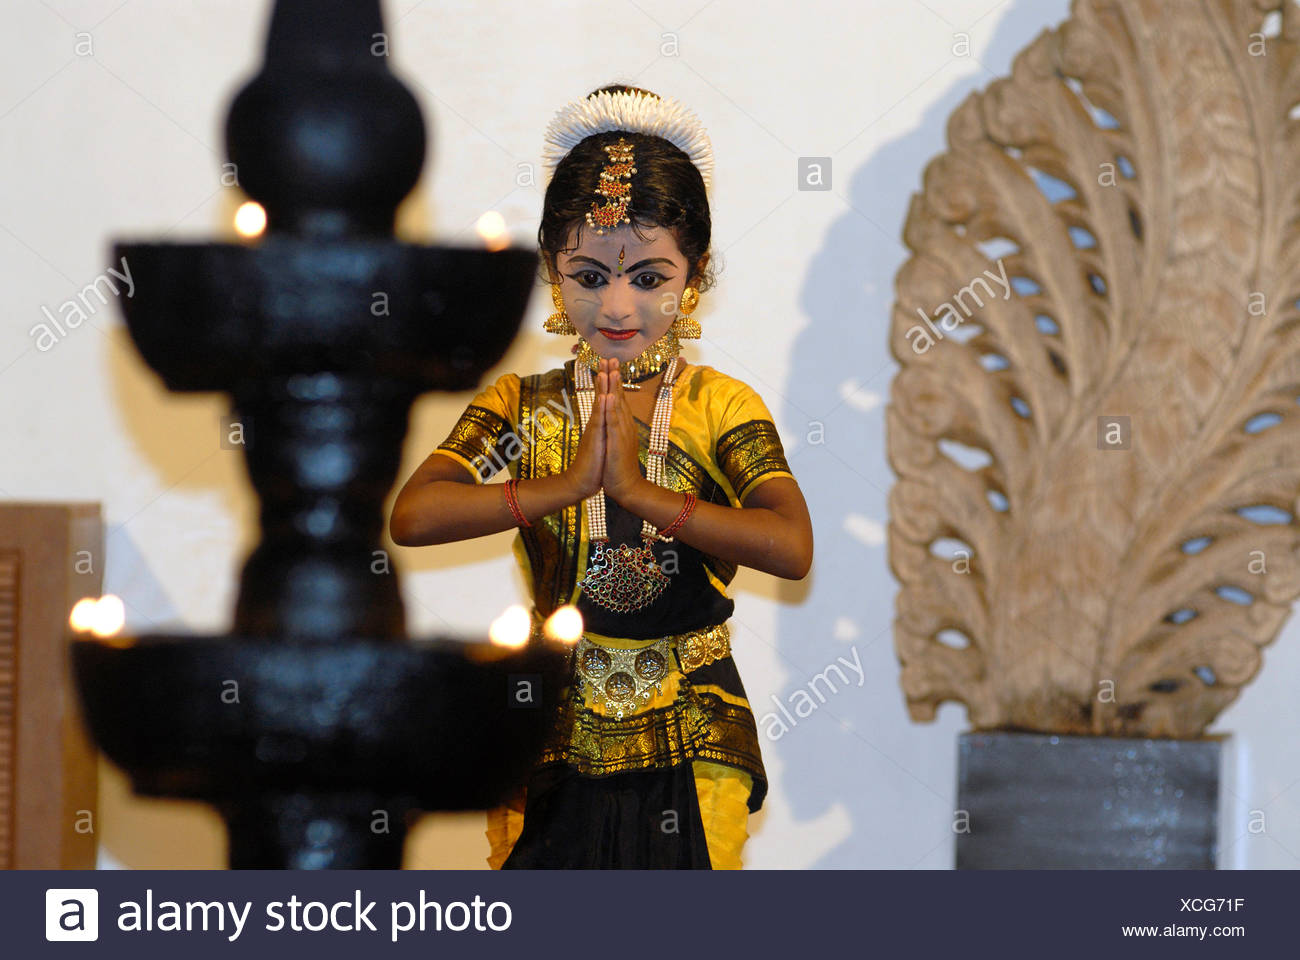 Young Bharata Natyam dancer, cultural program of the boutique hotel Malabar House, Fort Kochi, Fort Cochin, Kerala, South India - Stock Image